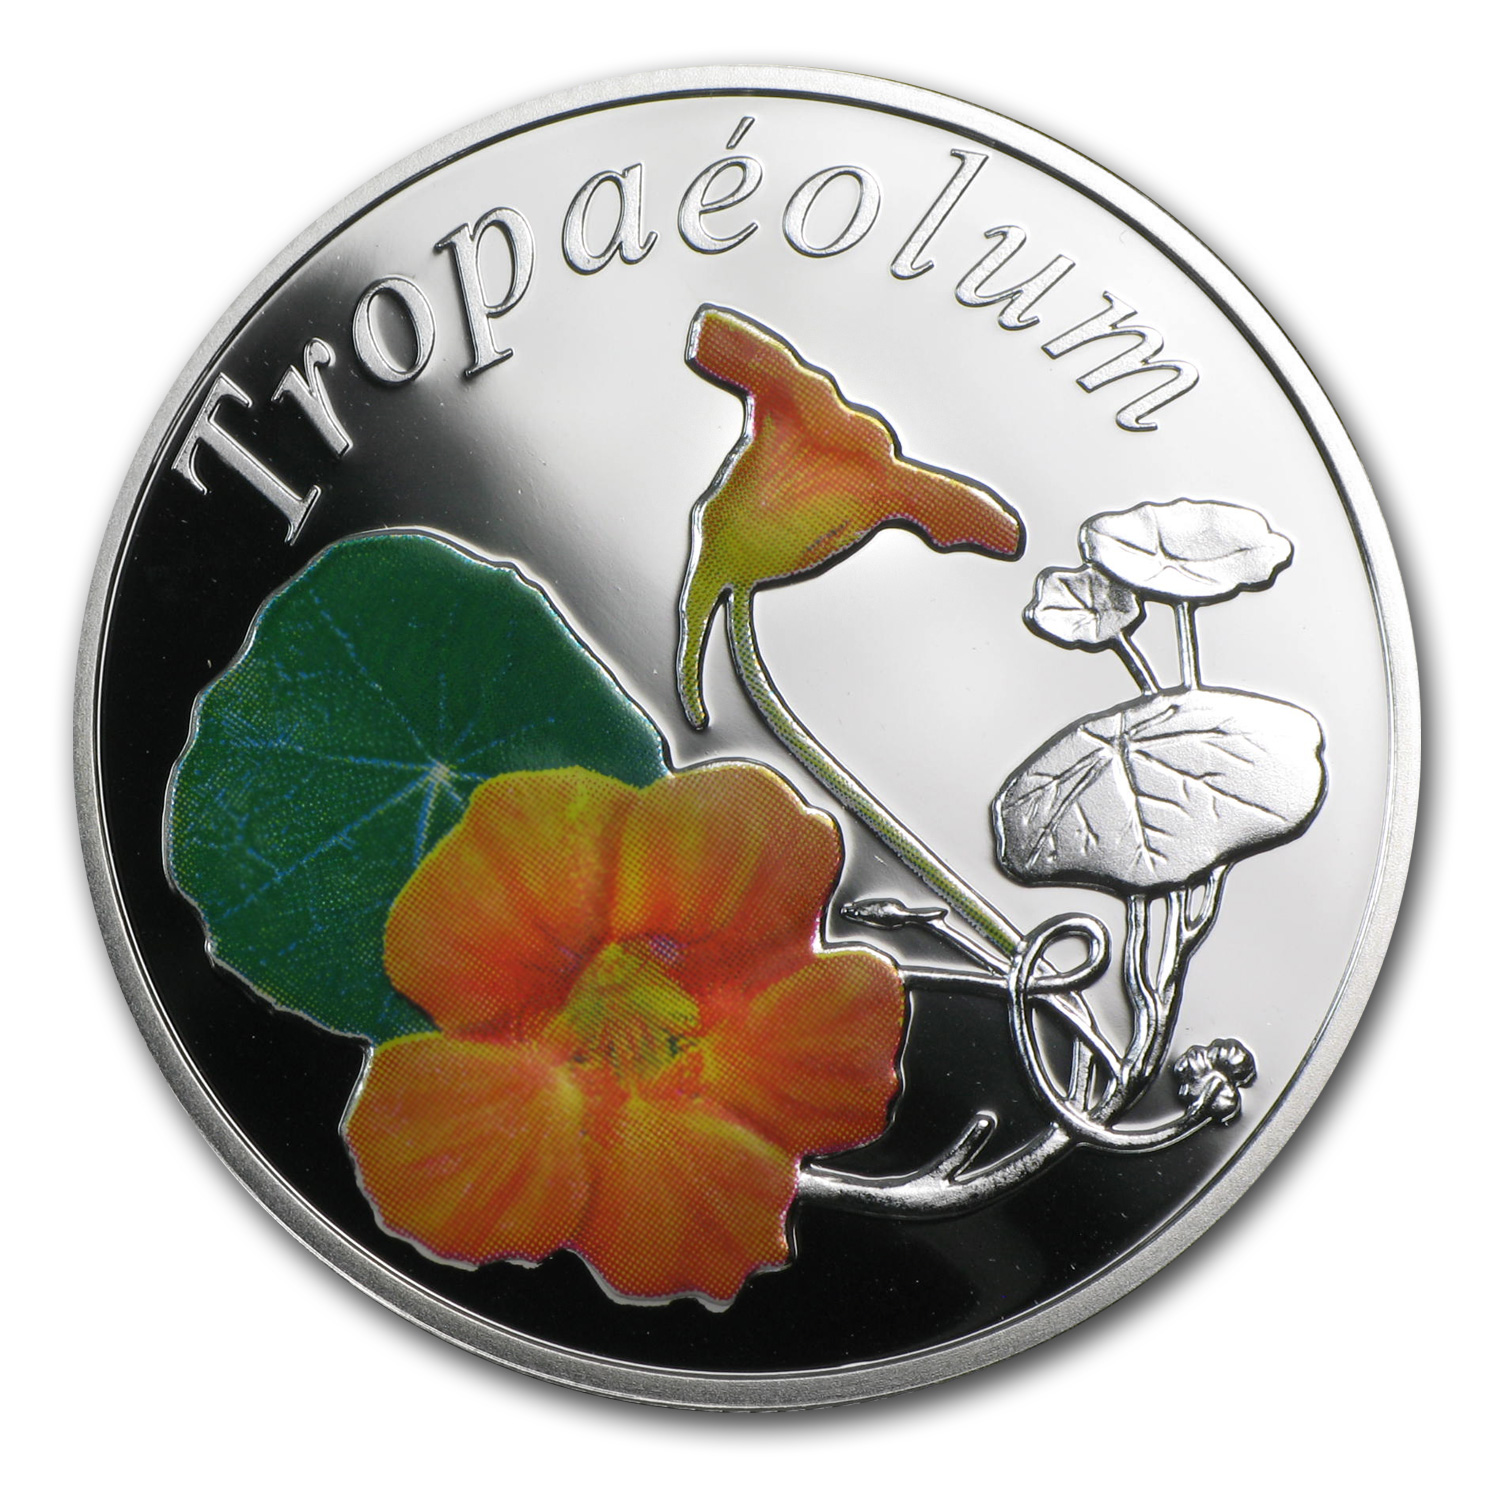 Belarus 2013 Silver Proof Under the Charm of Flowers - Nasturtium